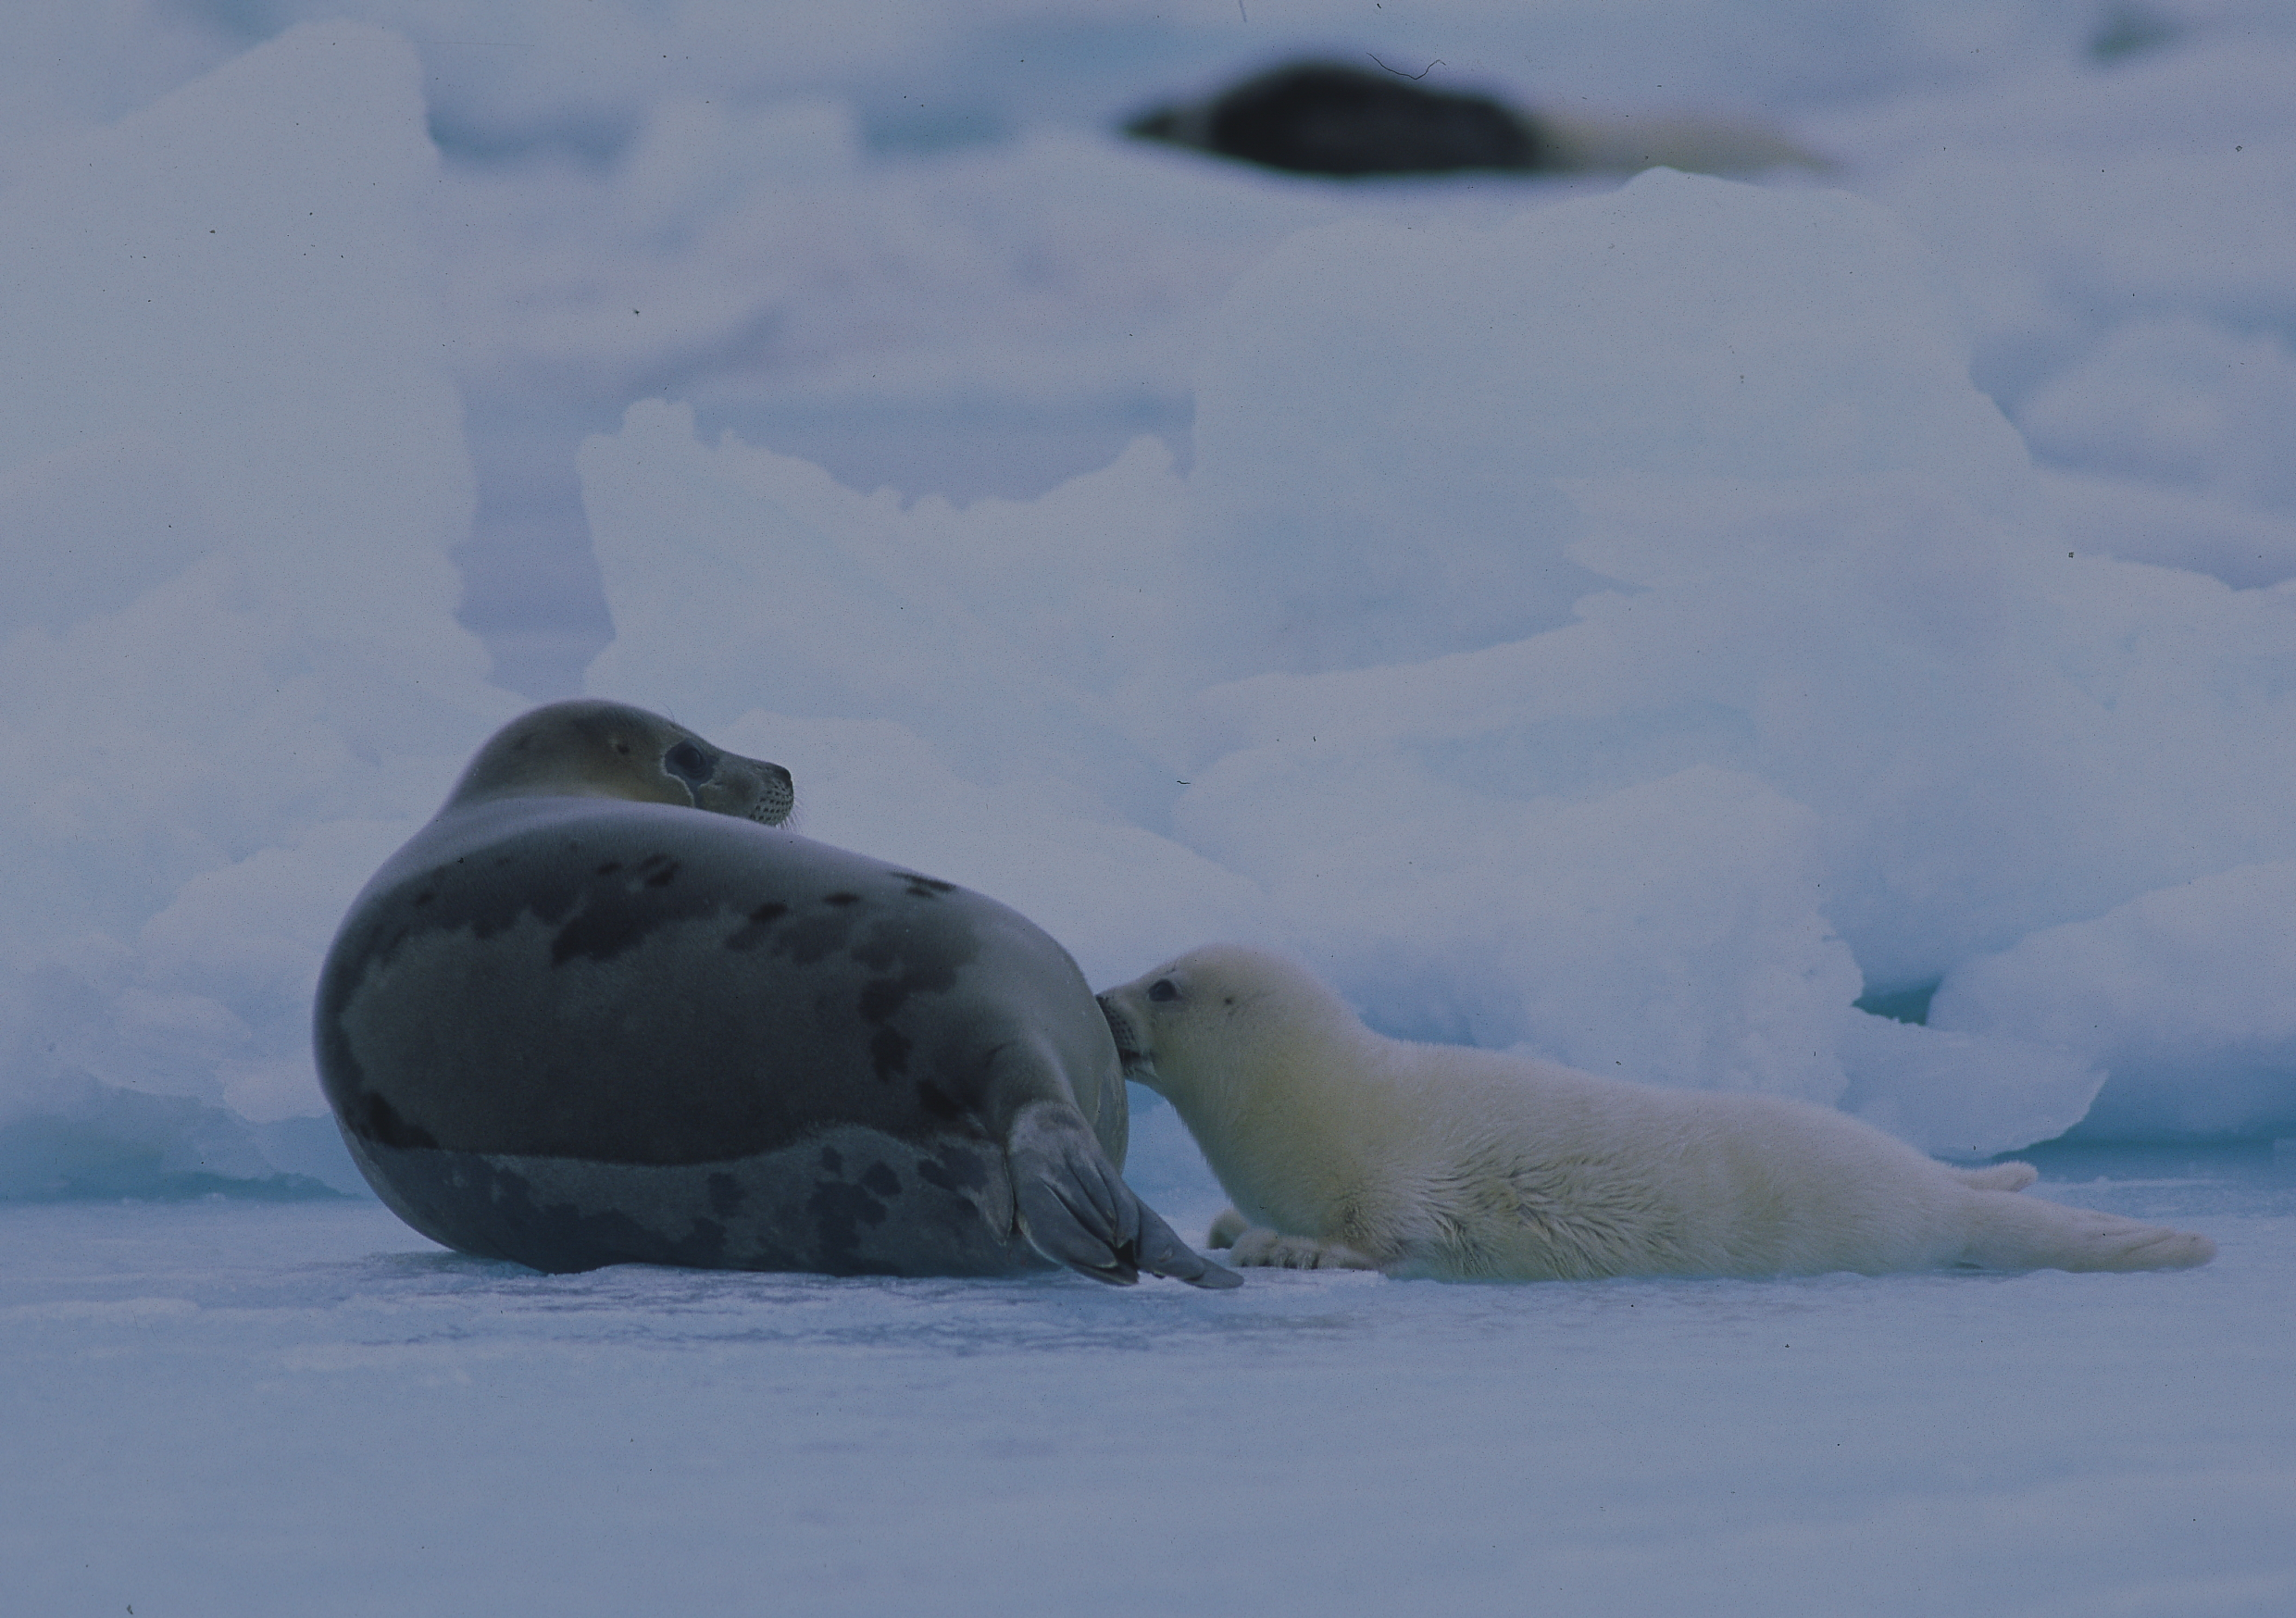 File:Harp seal mother and pup.jpg - Wikimedia Commons